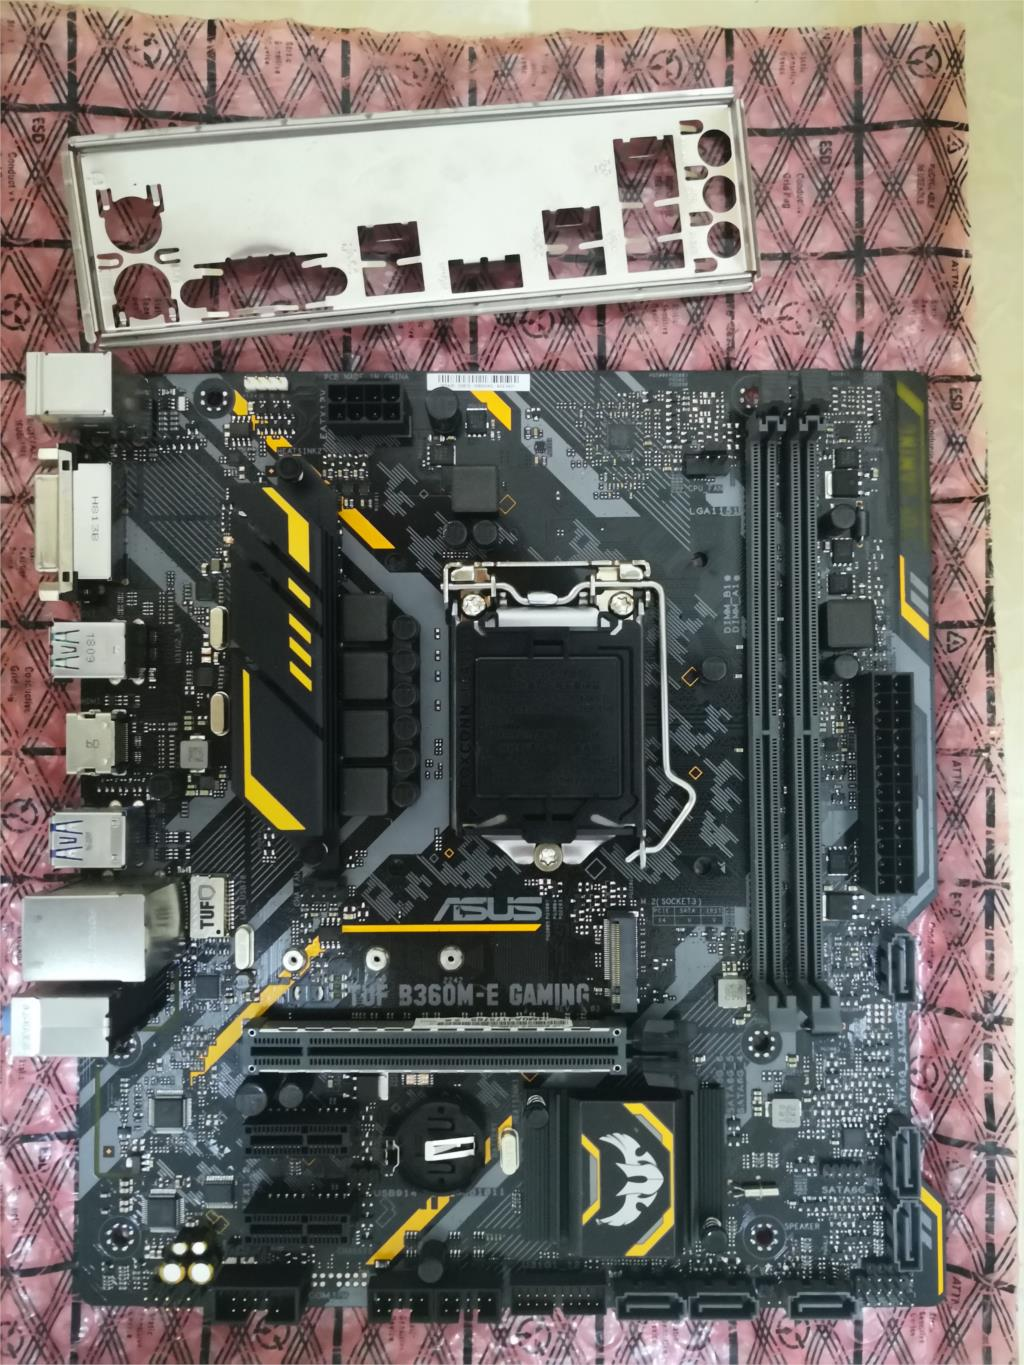 Asus B360M-E GAMING Desktop Computer Motherboard B360 Motherboard With COM Port Support 8400 Used Like New